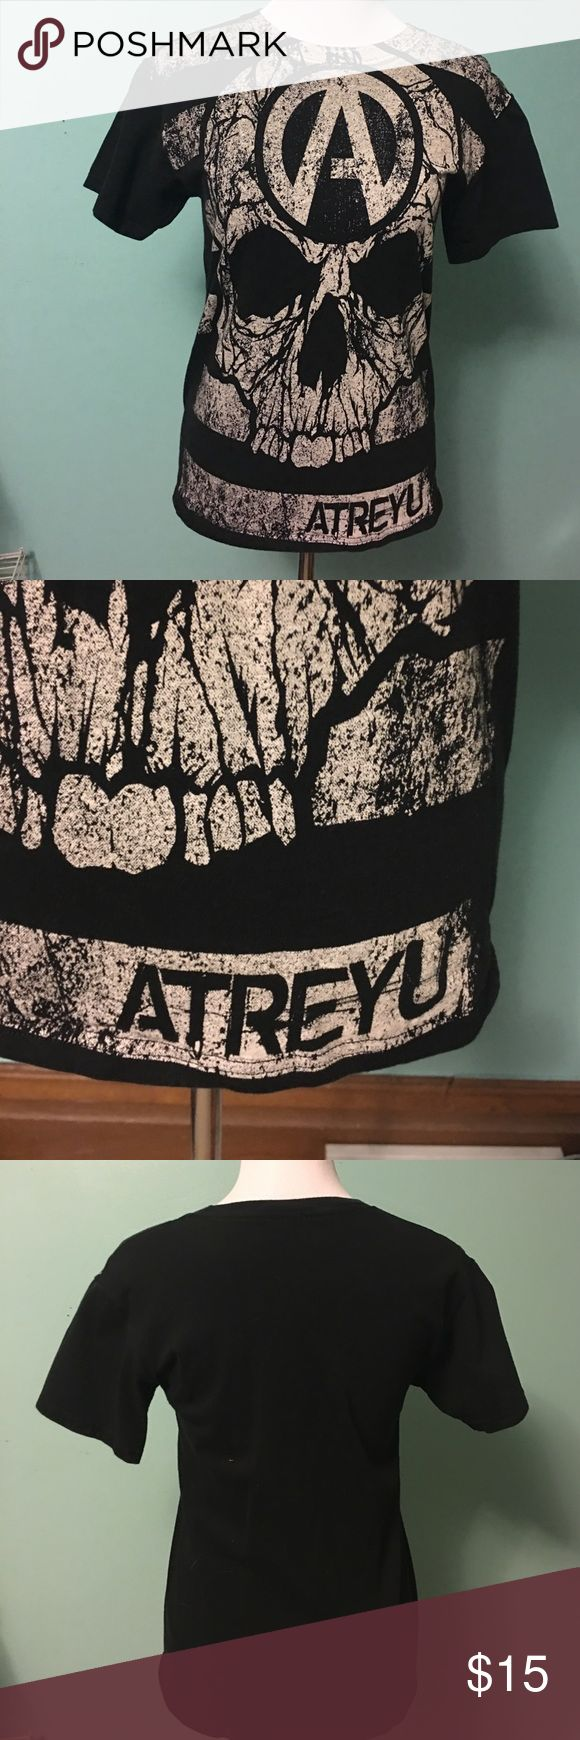 Atreyu Band Tee Worn a Few Times. Good Condition. No Holes or Stains. Shirts Tees - Short Sleeve